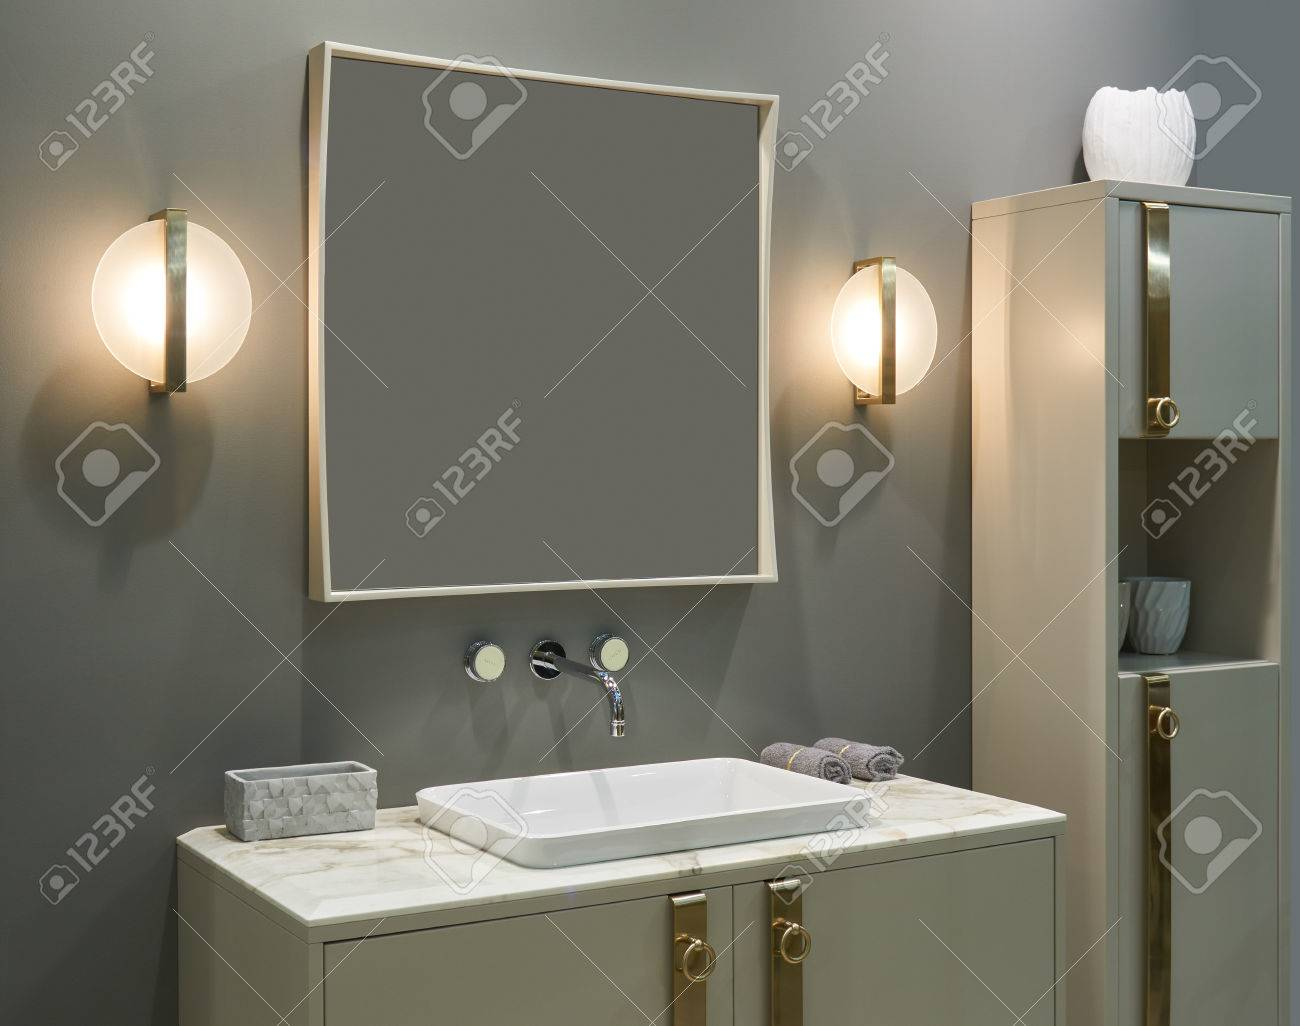 Luxury Interior Bathroom Wall Mounted Mixer Inset Washbasin Stock Photo Picture And Royalty Free Image Image 75500200